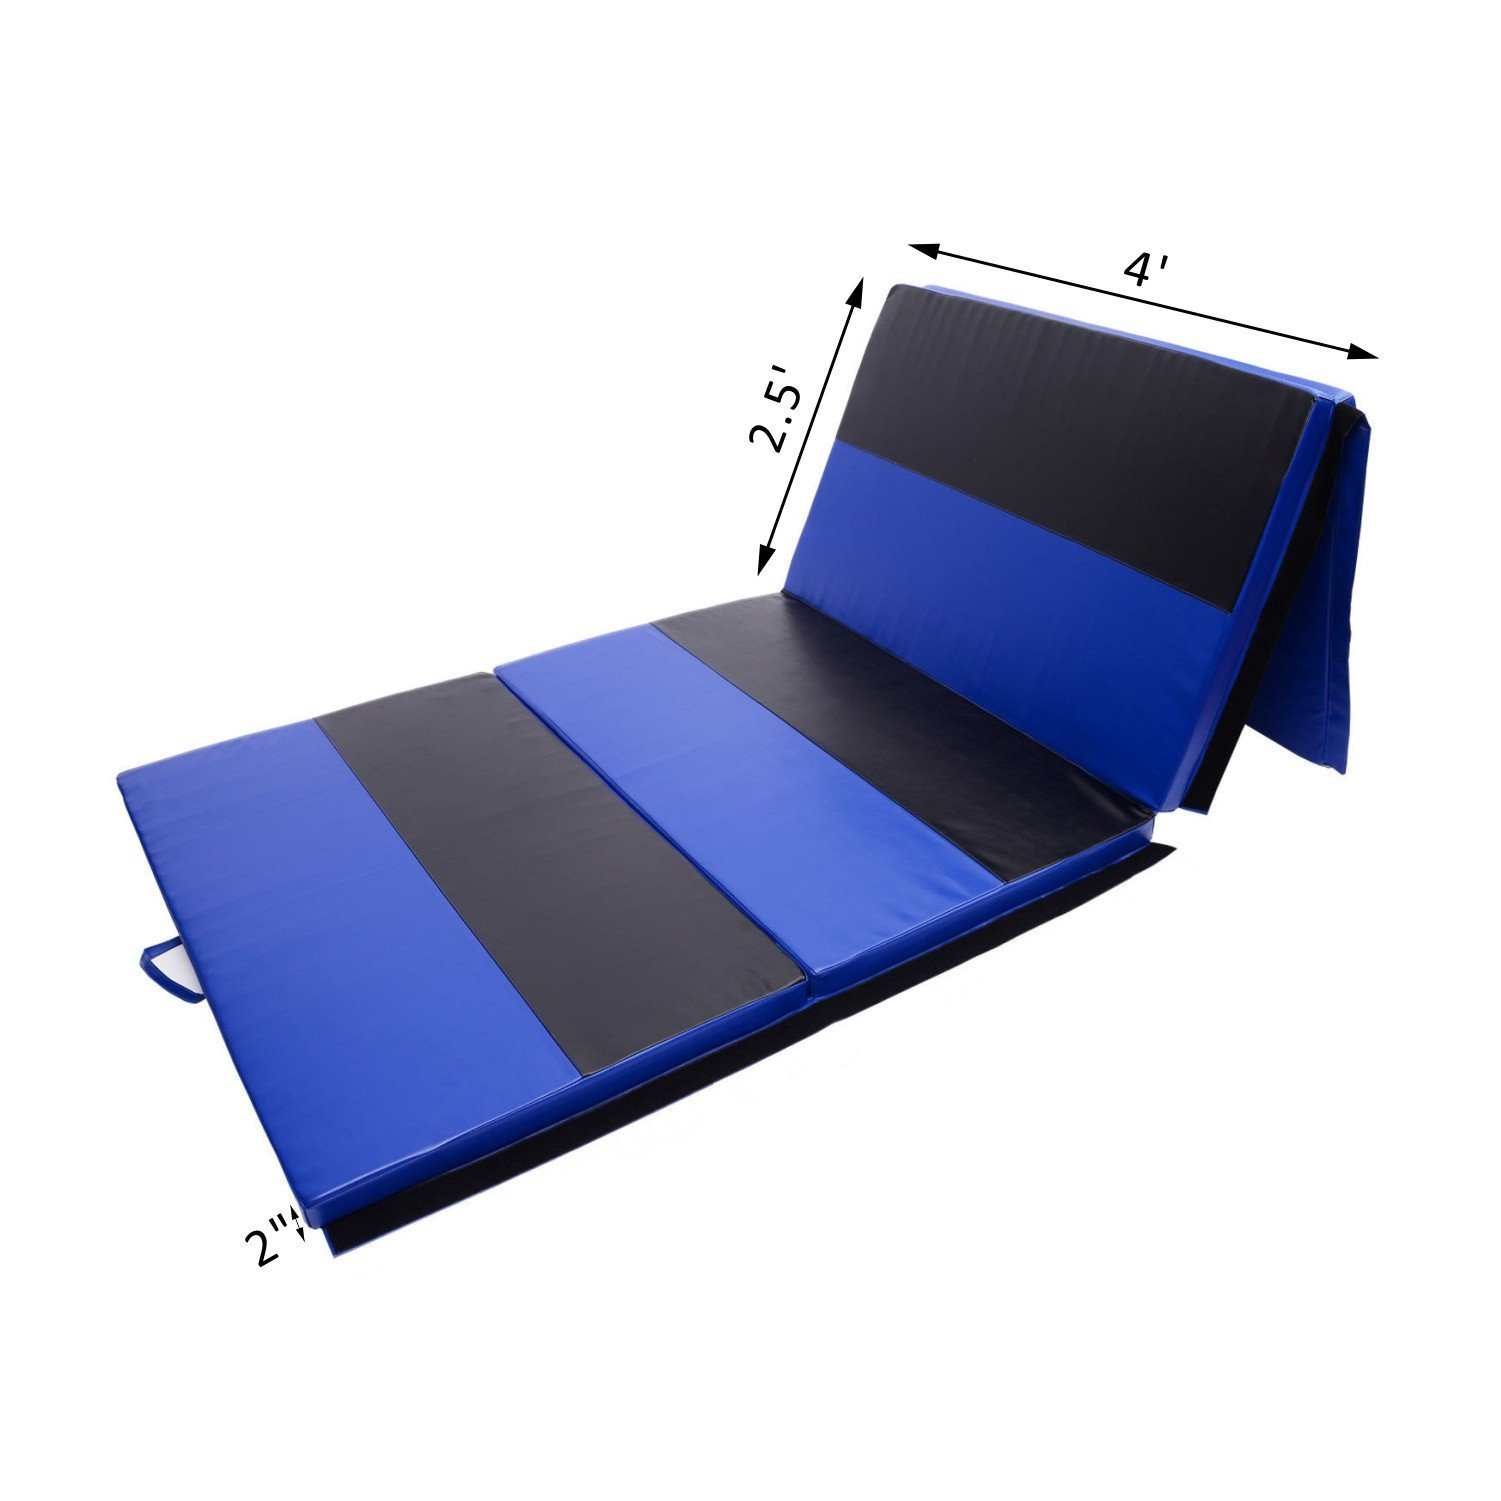 Folding Gymnastics Mat 4' x 10' x 2' Martial Arts Aerobics Exercise Yoga Tumbling Pad With Ebook by MRT SUPPLY